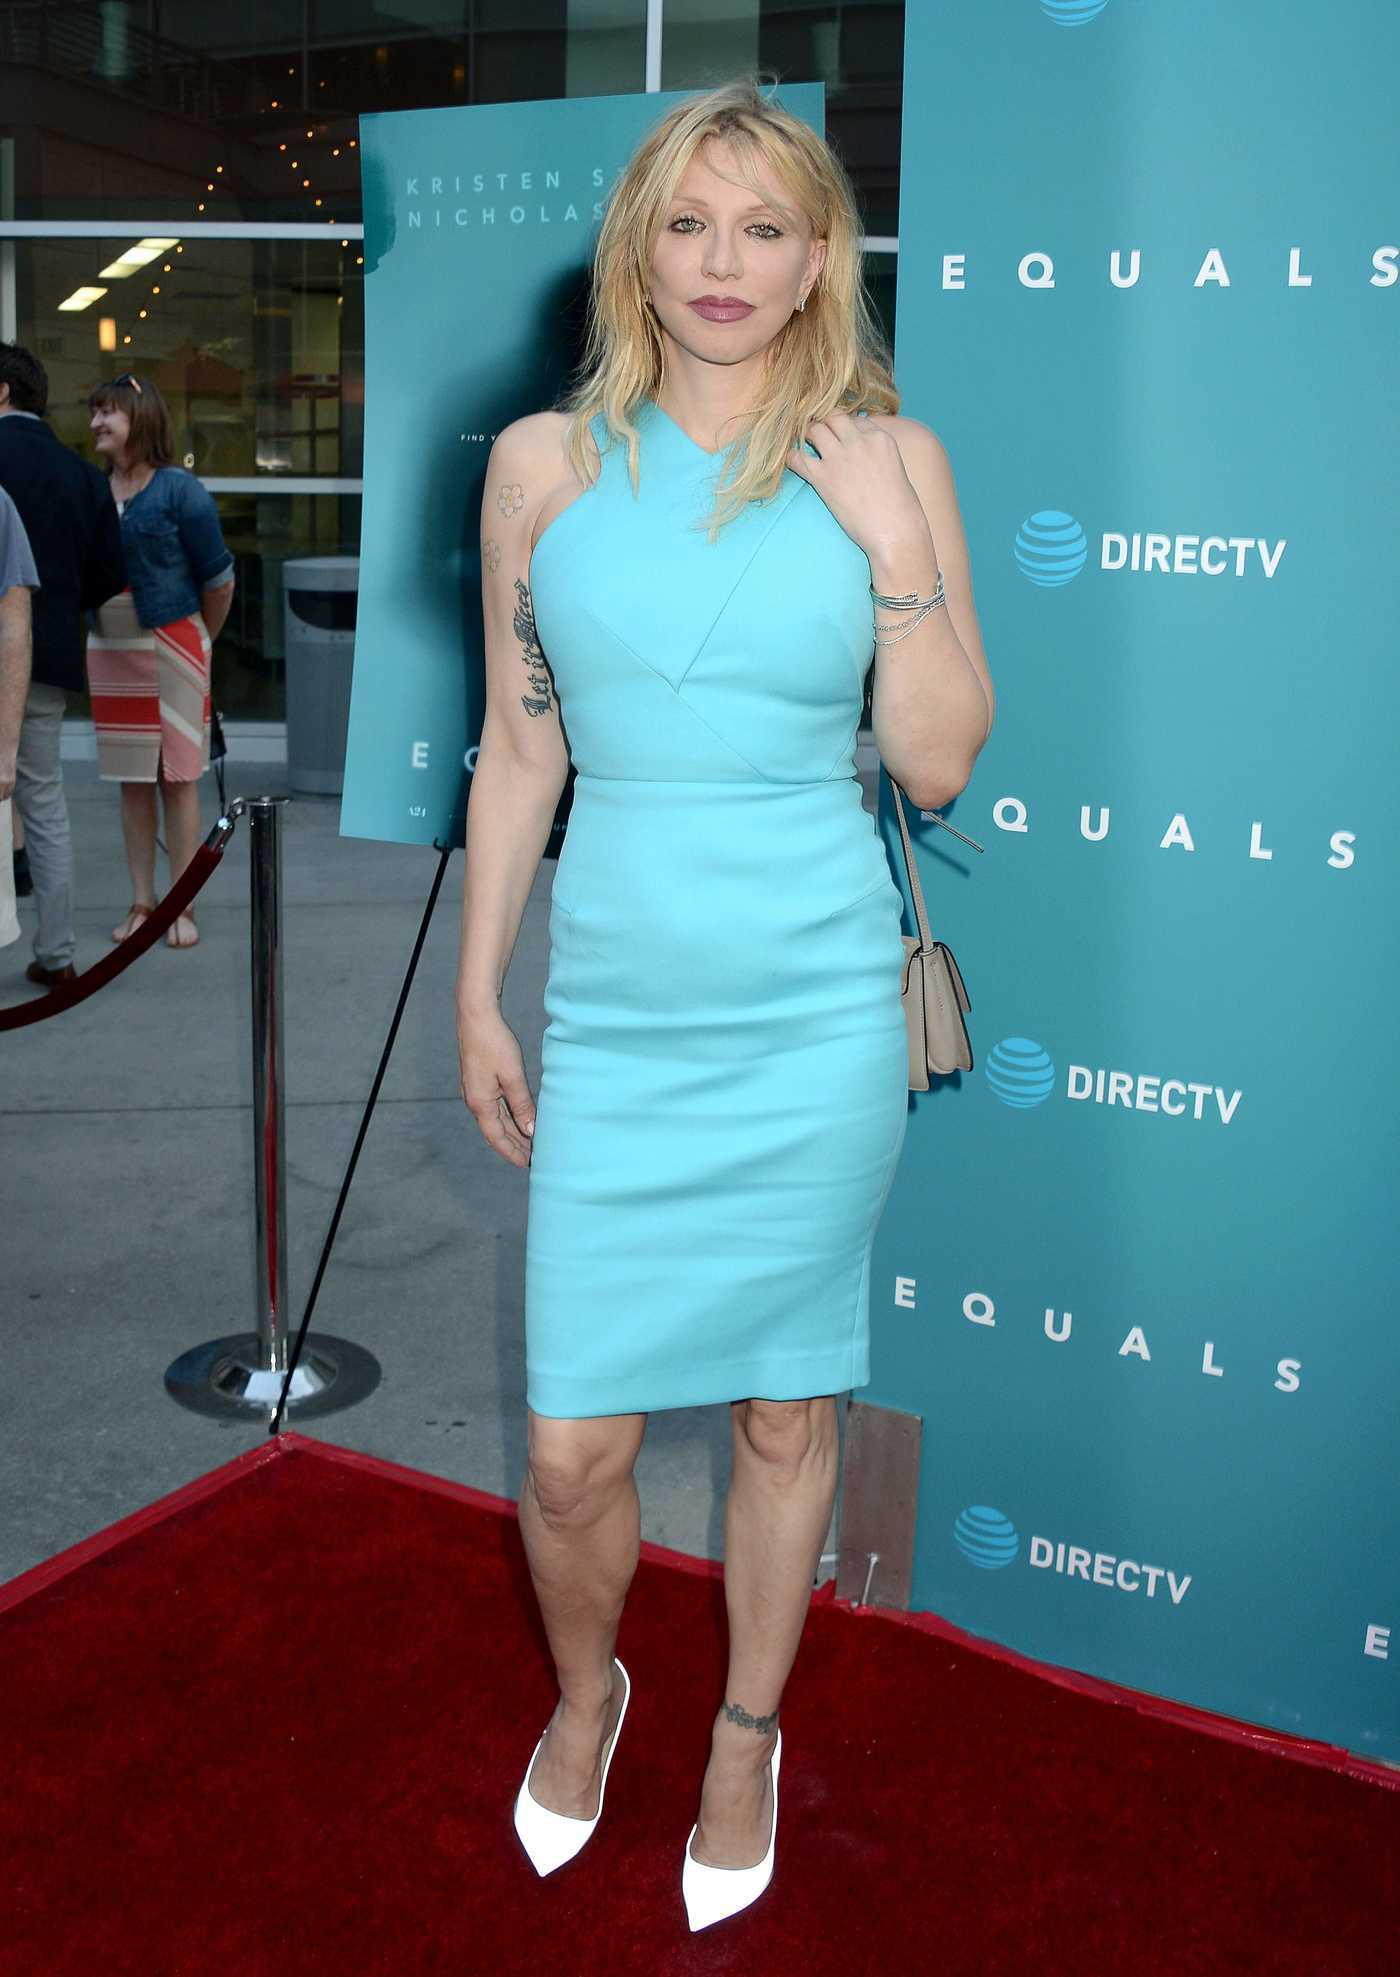 Courtney Love at Equals Premiere in Hollywood 07/07/2016